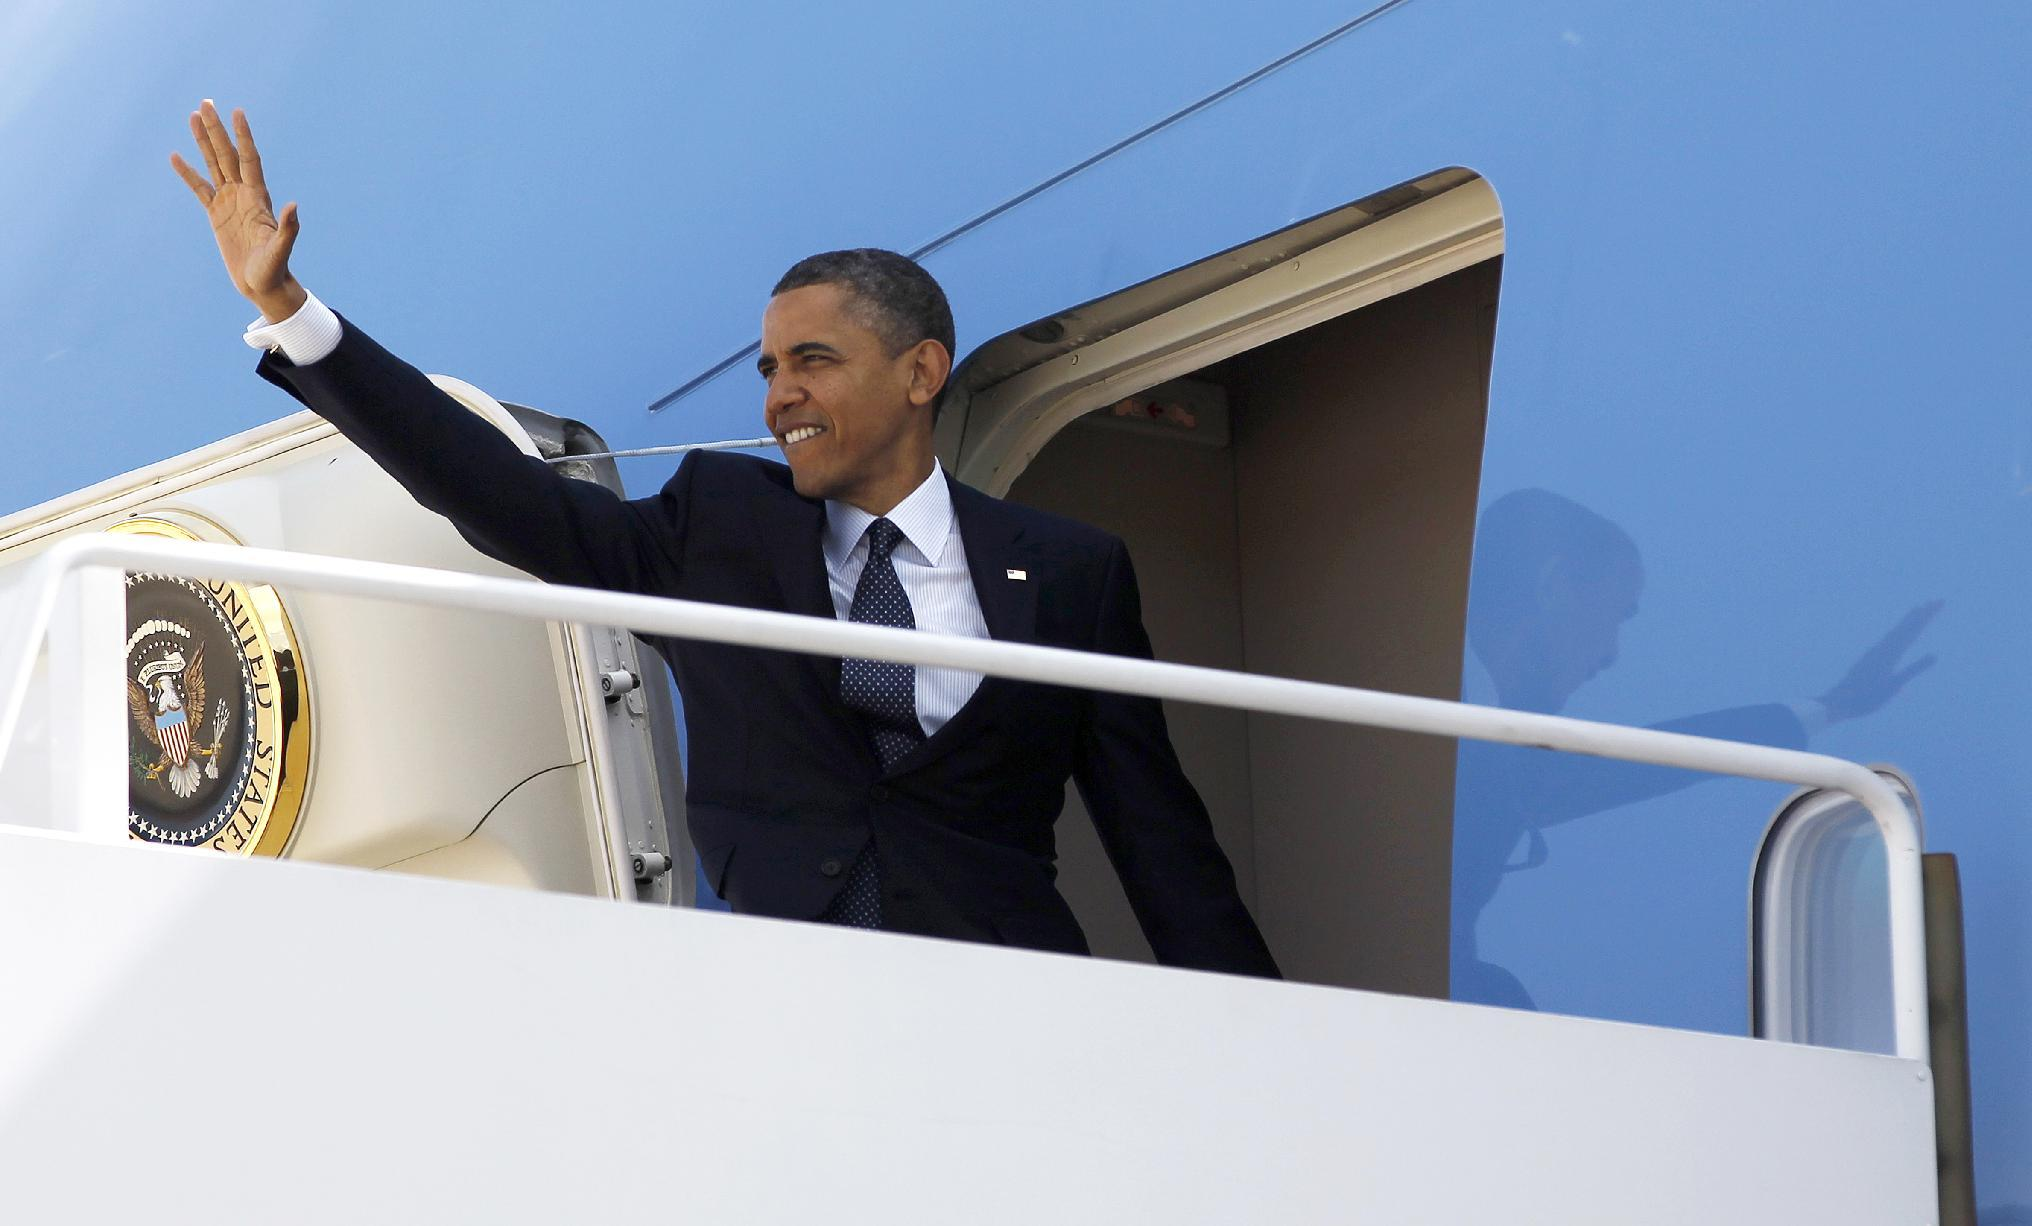 President Barack Obama waves as he board Air Force One before his departure from Andrews Air Force Base, Md.,Thursday, May, 10, 2012. Obama is traveling to the West Coast for a series of campaign fundraisers. (AP Photo/Pablo Martinez Monsivais)